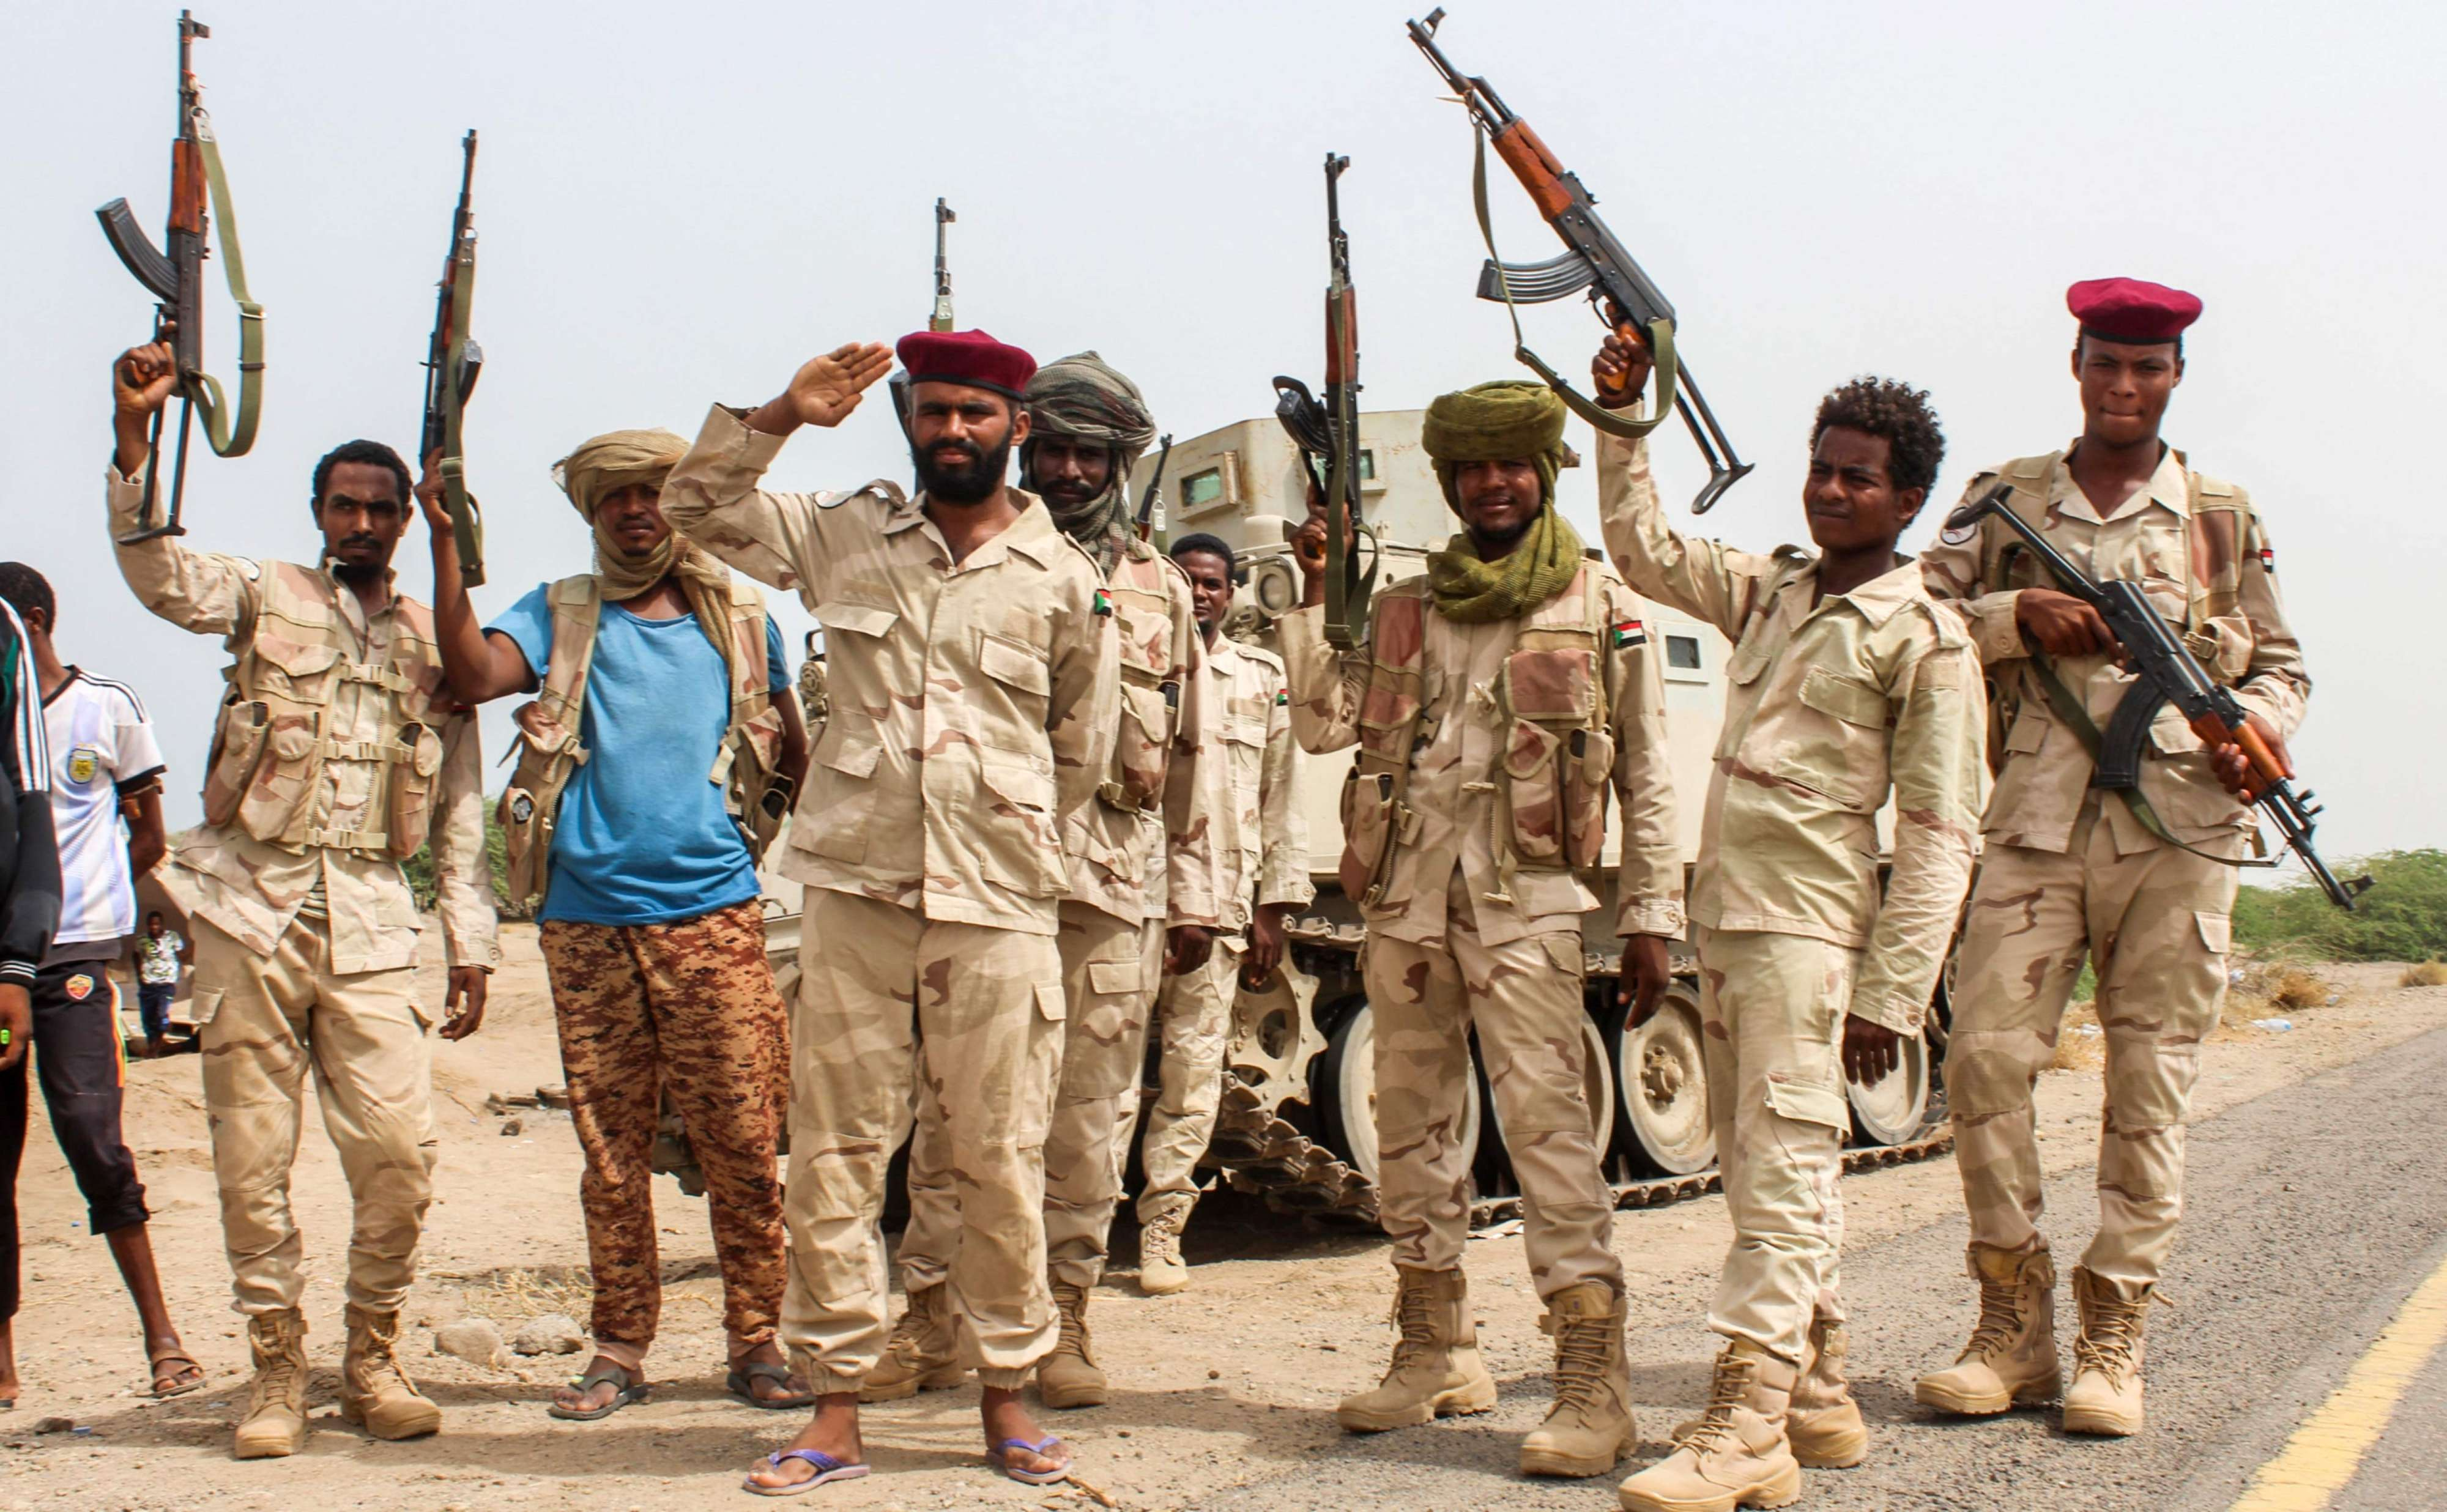 Sudanese soldiers fighting alongside Yemen's pro-government forces gather on the side of a road near Al-Jah, about 50km south-west of Hodeidah, on June 22. (AFP)